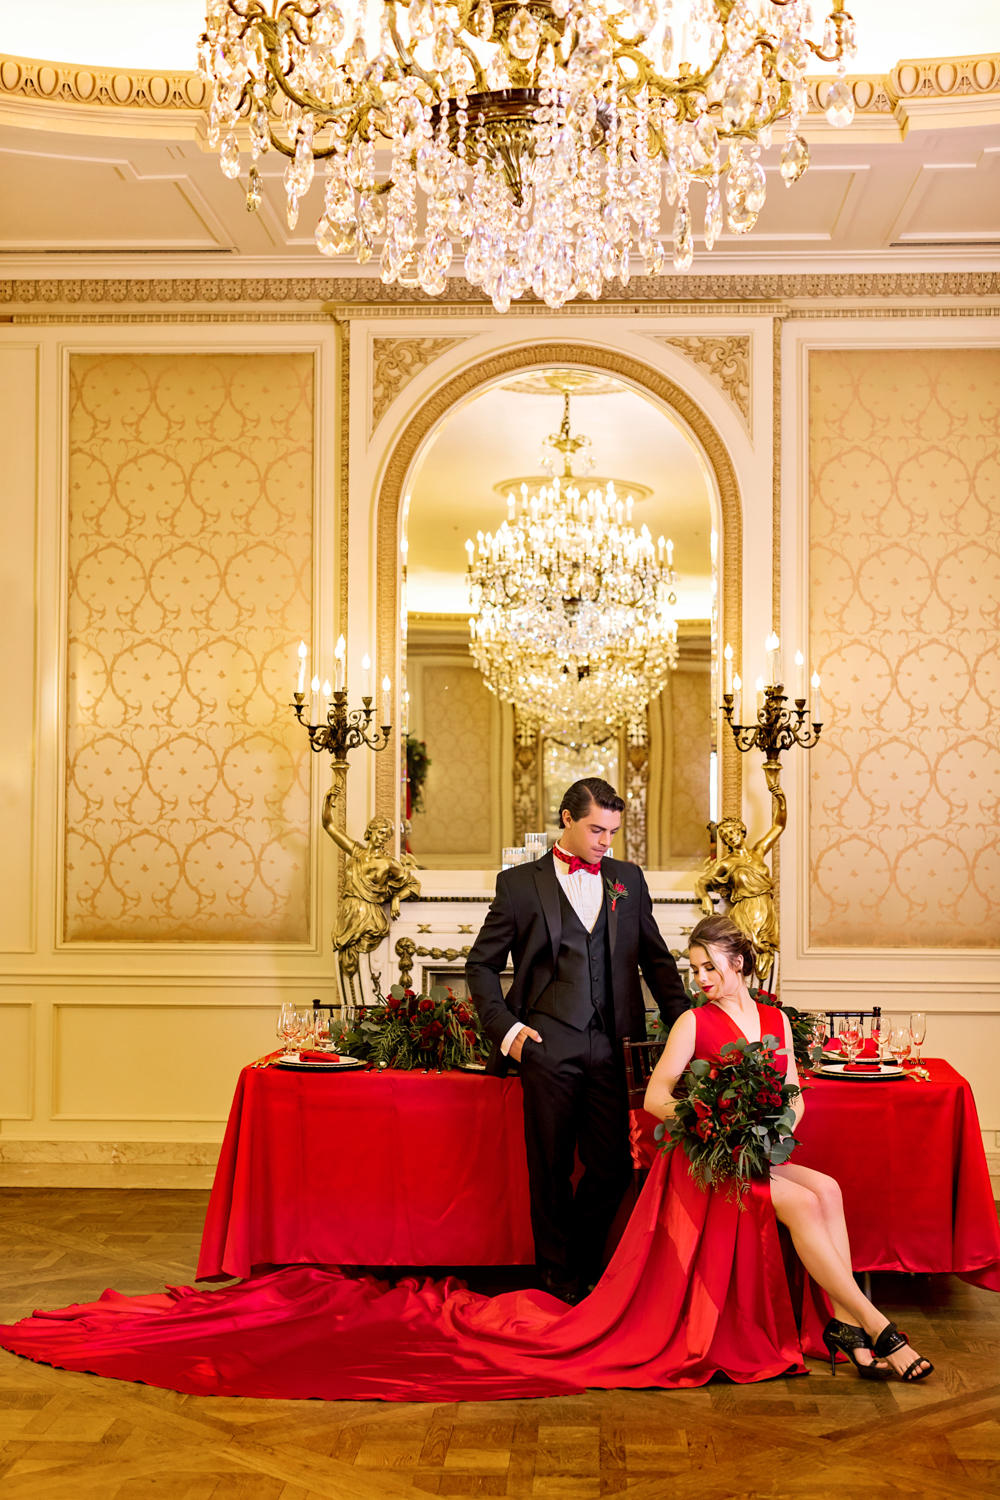 San Diego Red Chinese Wedding Styled Shoot The Westgate Hotel Venue-5685.jpg